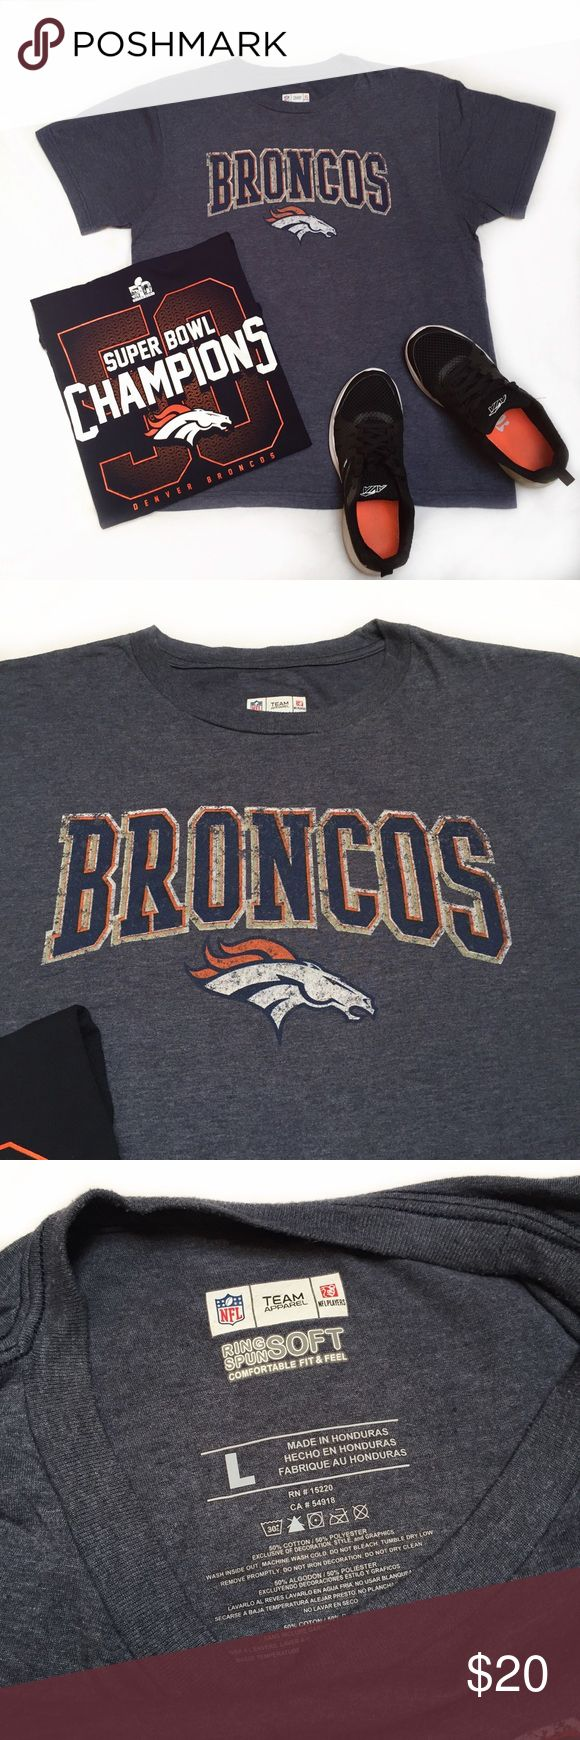 NFL Denver BRONCOS peyton manning shirt NFL Official Denver Broncos Tshirt • BRONCOS COUNTRY baby! • Size: Large • Official NFL DENVER BRONCOS shirt! • Broncos logo on the front! • Peyton Manning #18 name & number on the back! • Ring Spun and super soft! • Has some stretch to it! • Material: 50% Cotton and 50% Polyester • EXCELLENT condition. Worn & washer a few times but feels Brand New! NFL Tops Tees - Short Sleeve